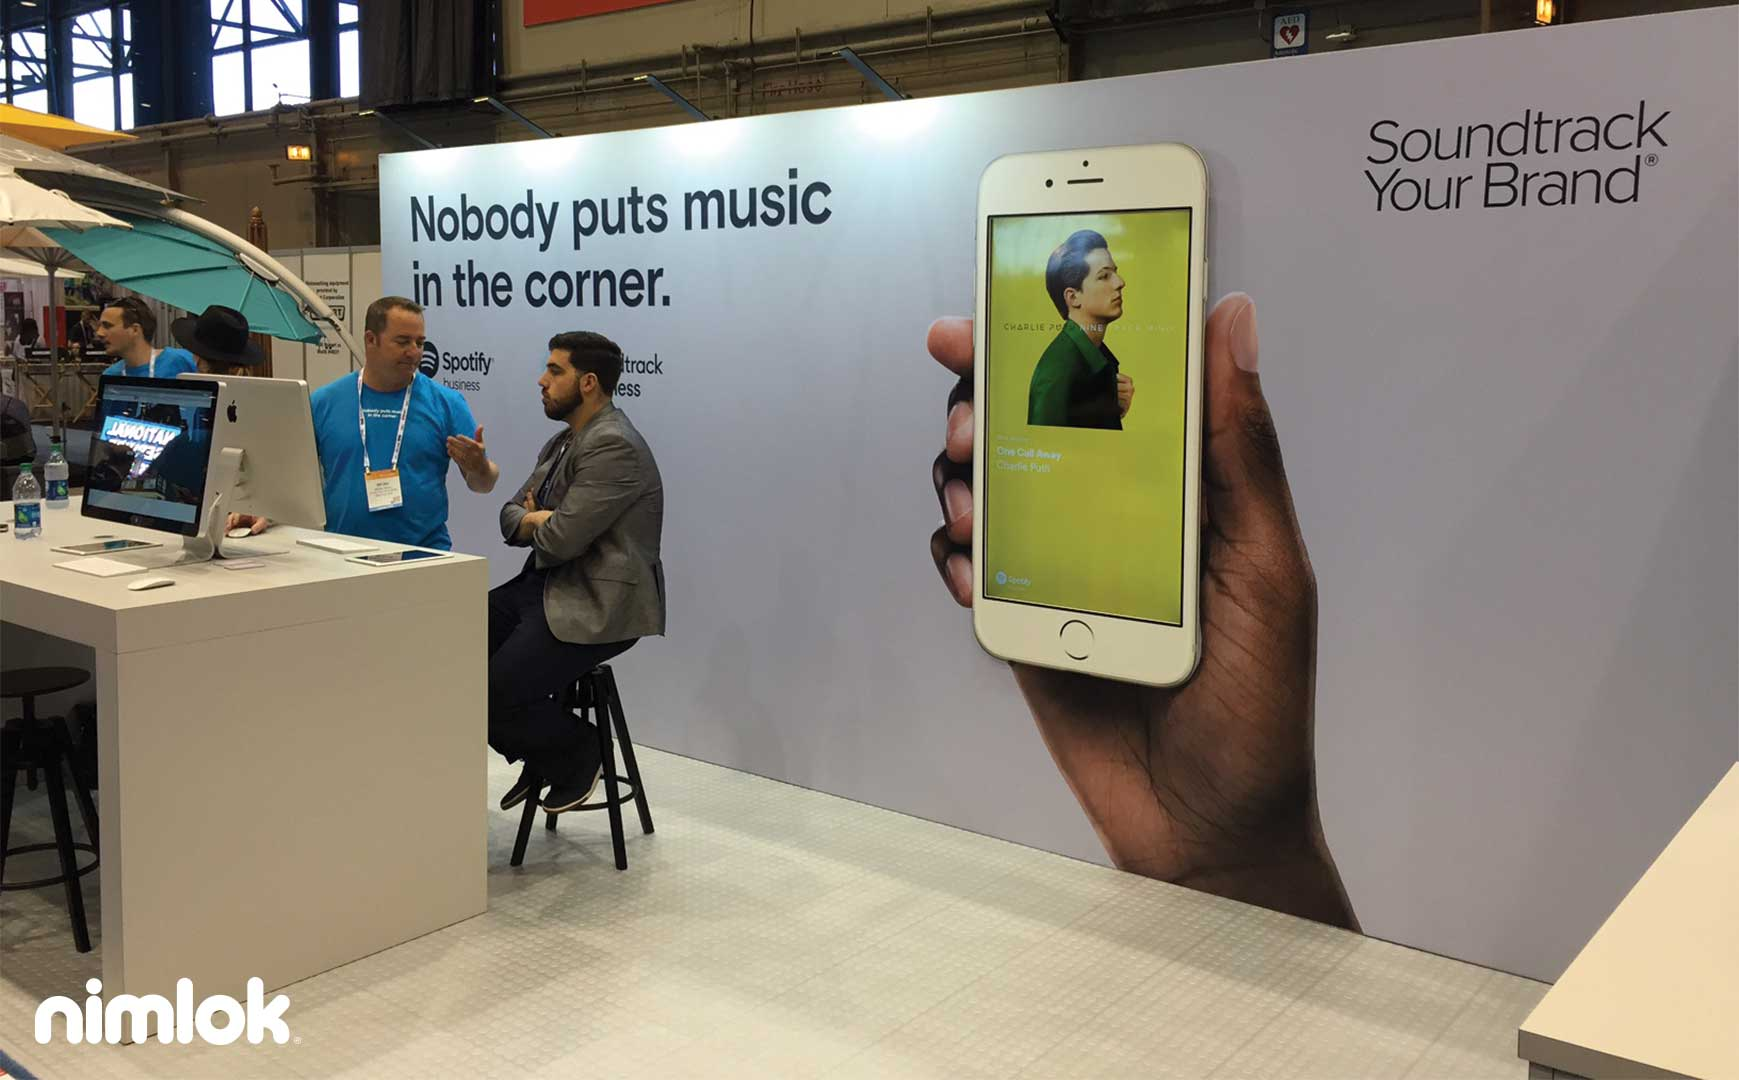 Soundtrack Your Brand's Creative Inline Exhibit